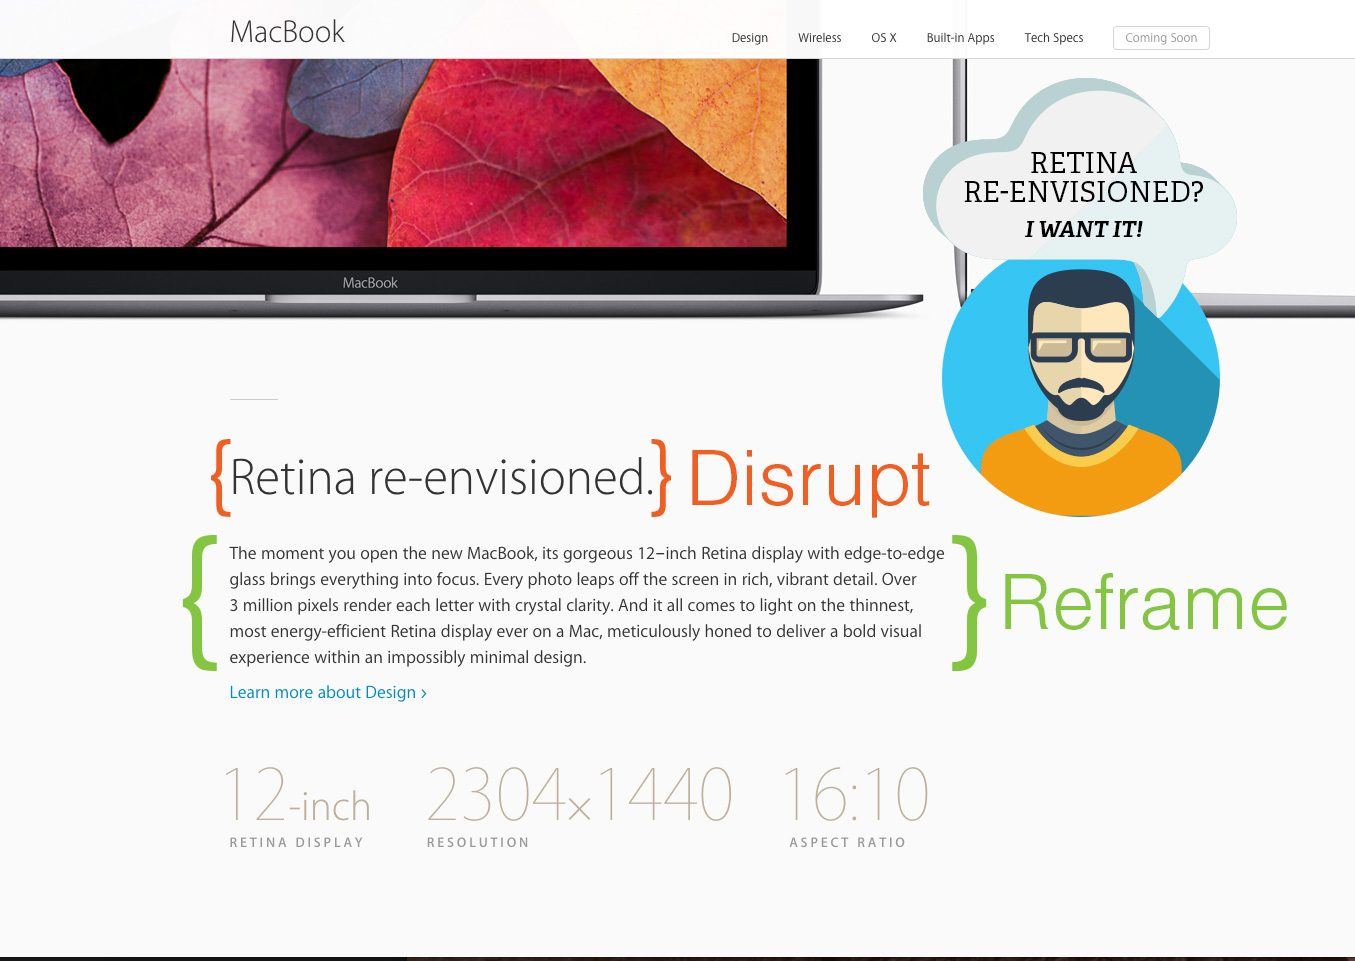 Apple-Disrupt-Reframe